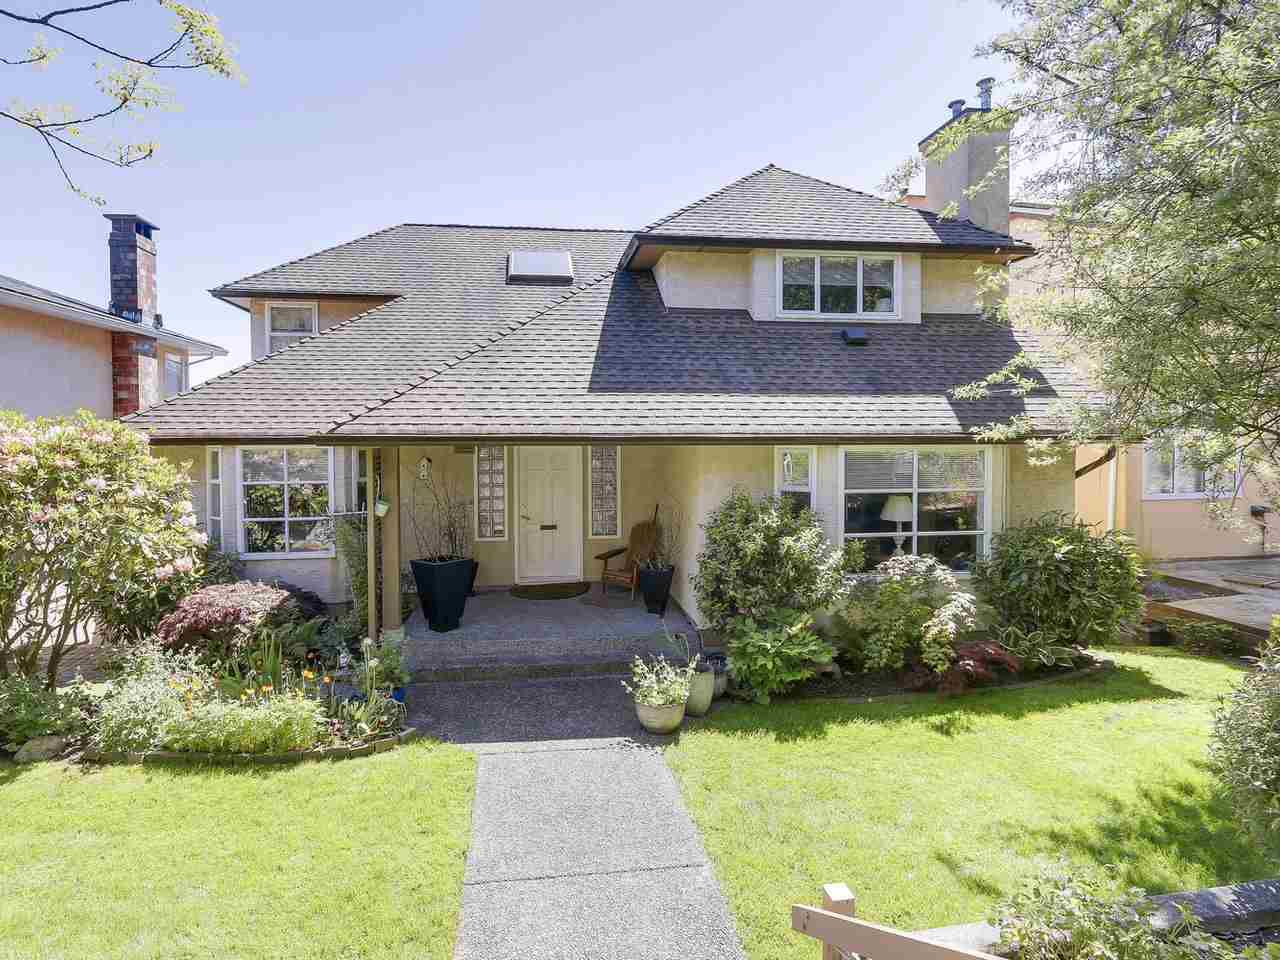 Photo 1: Photos: 737 East 29th Street, North Vancouver